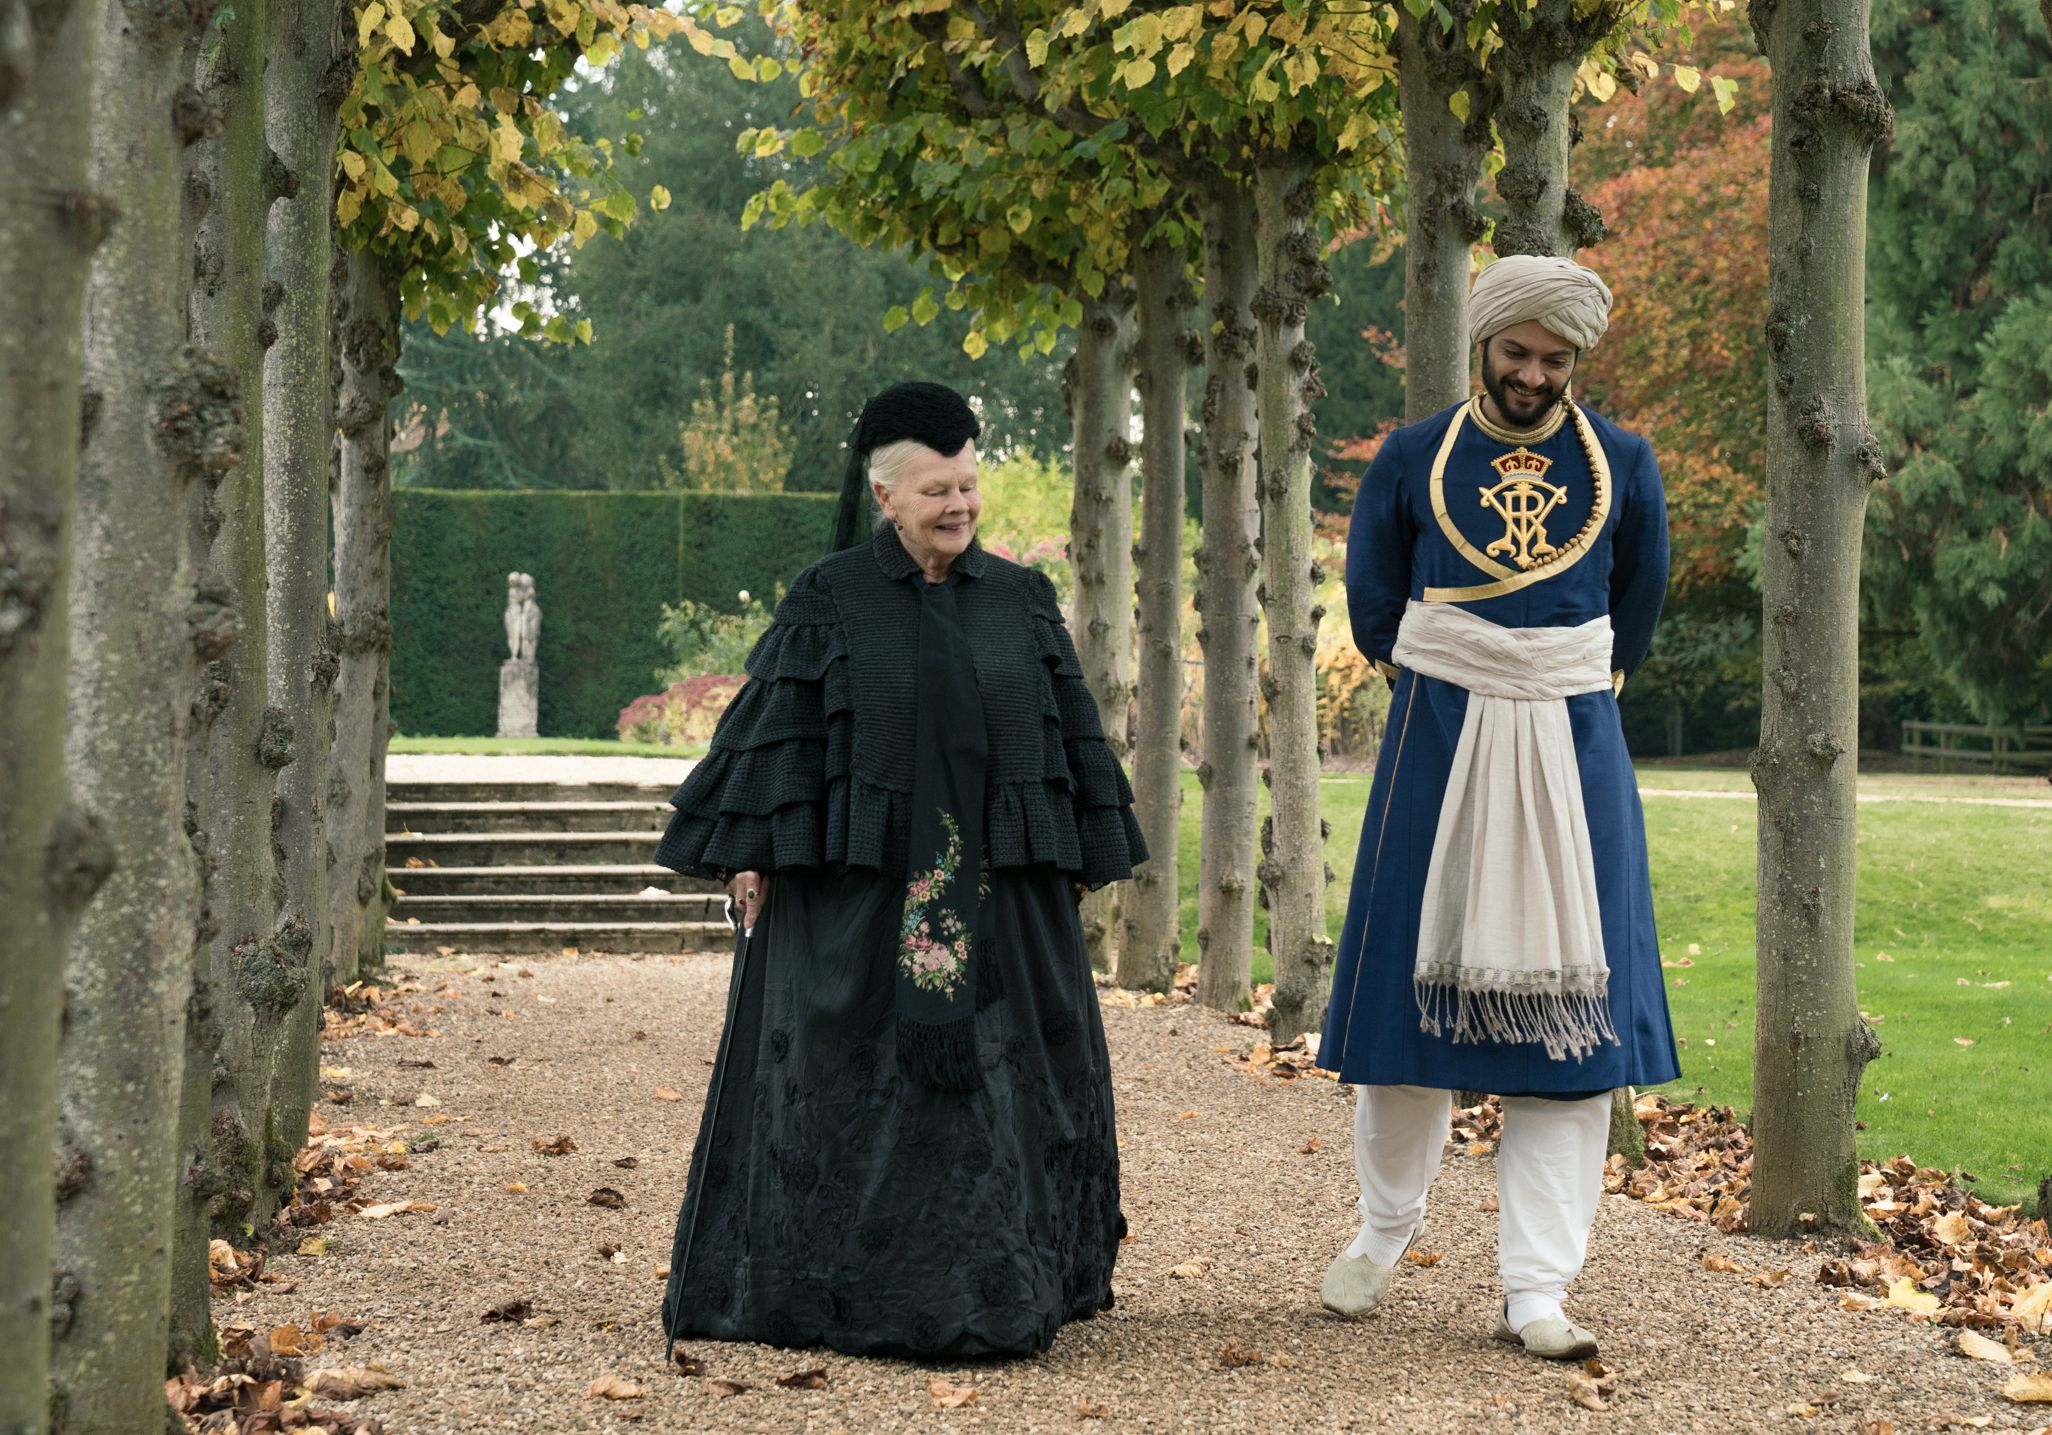 'Victoria and Abdul' Is an Intriguing Tale of an Unlikely Friendship